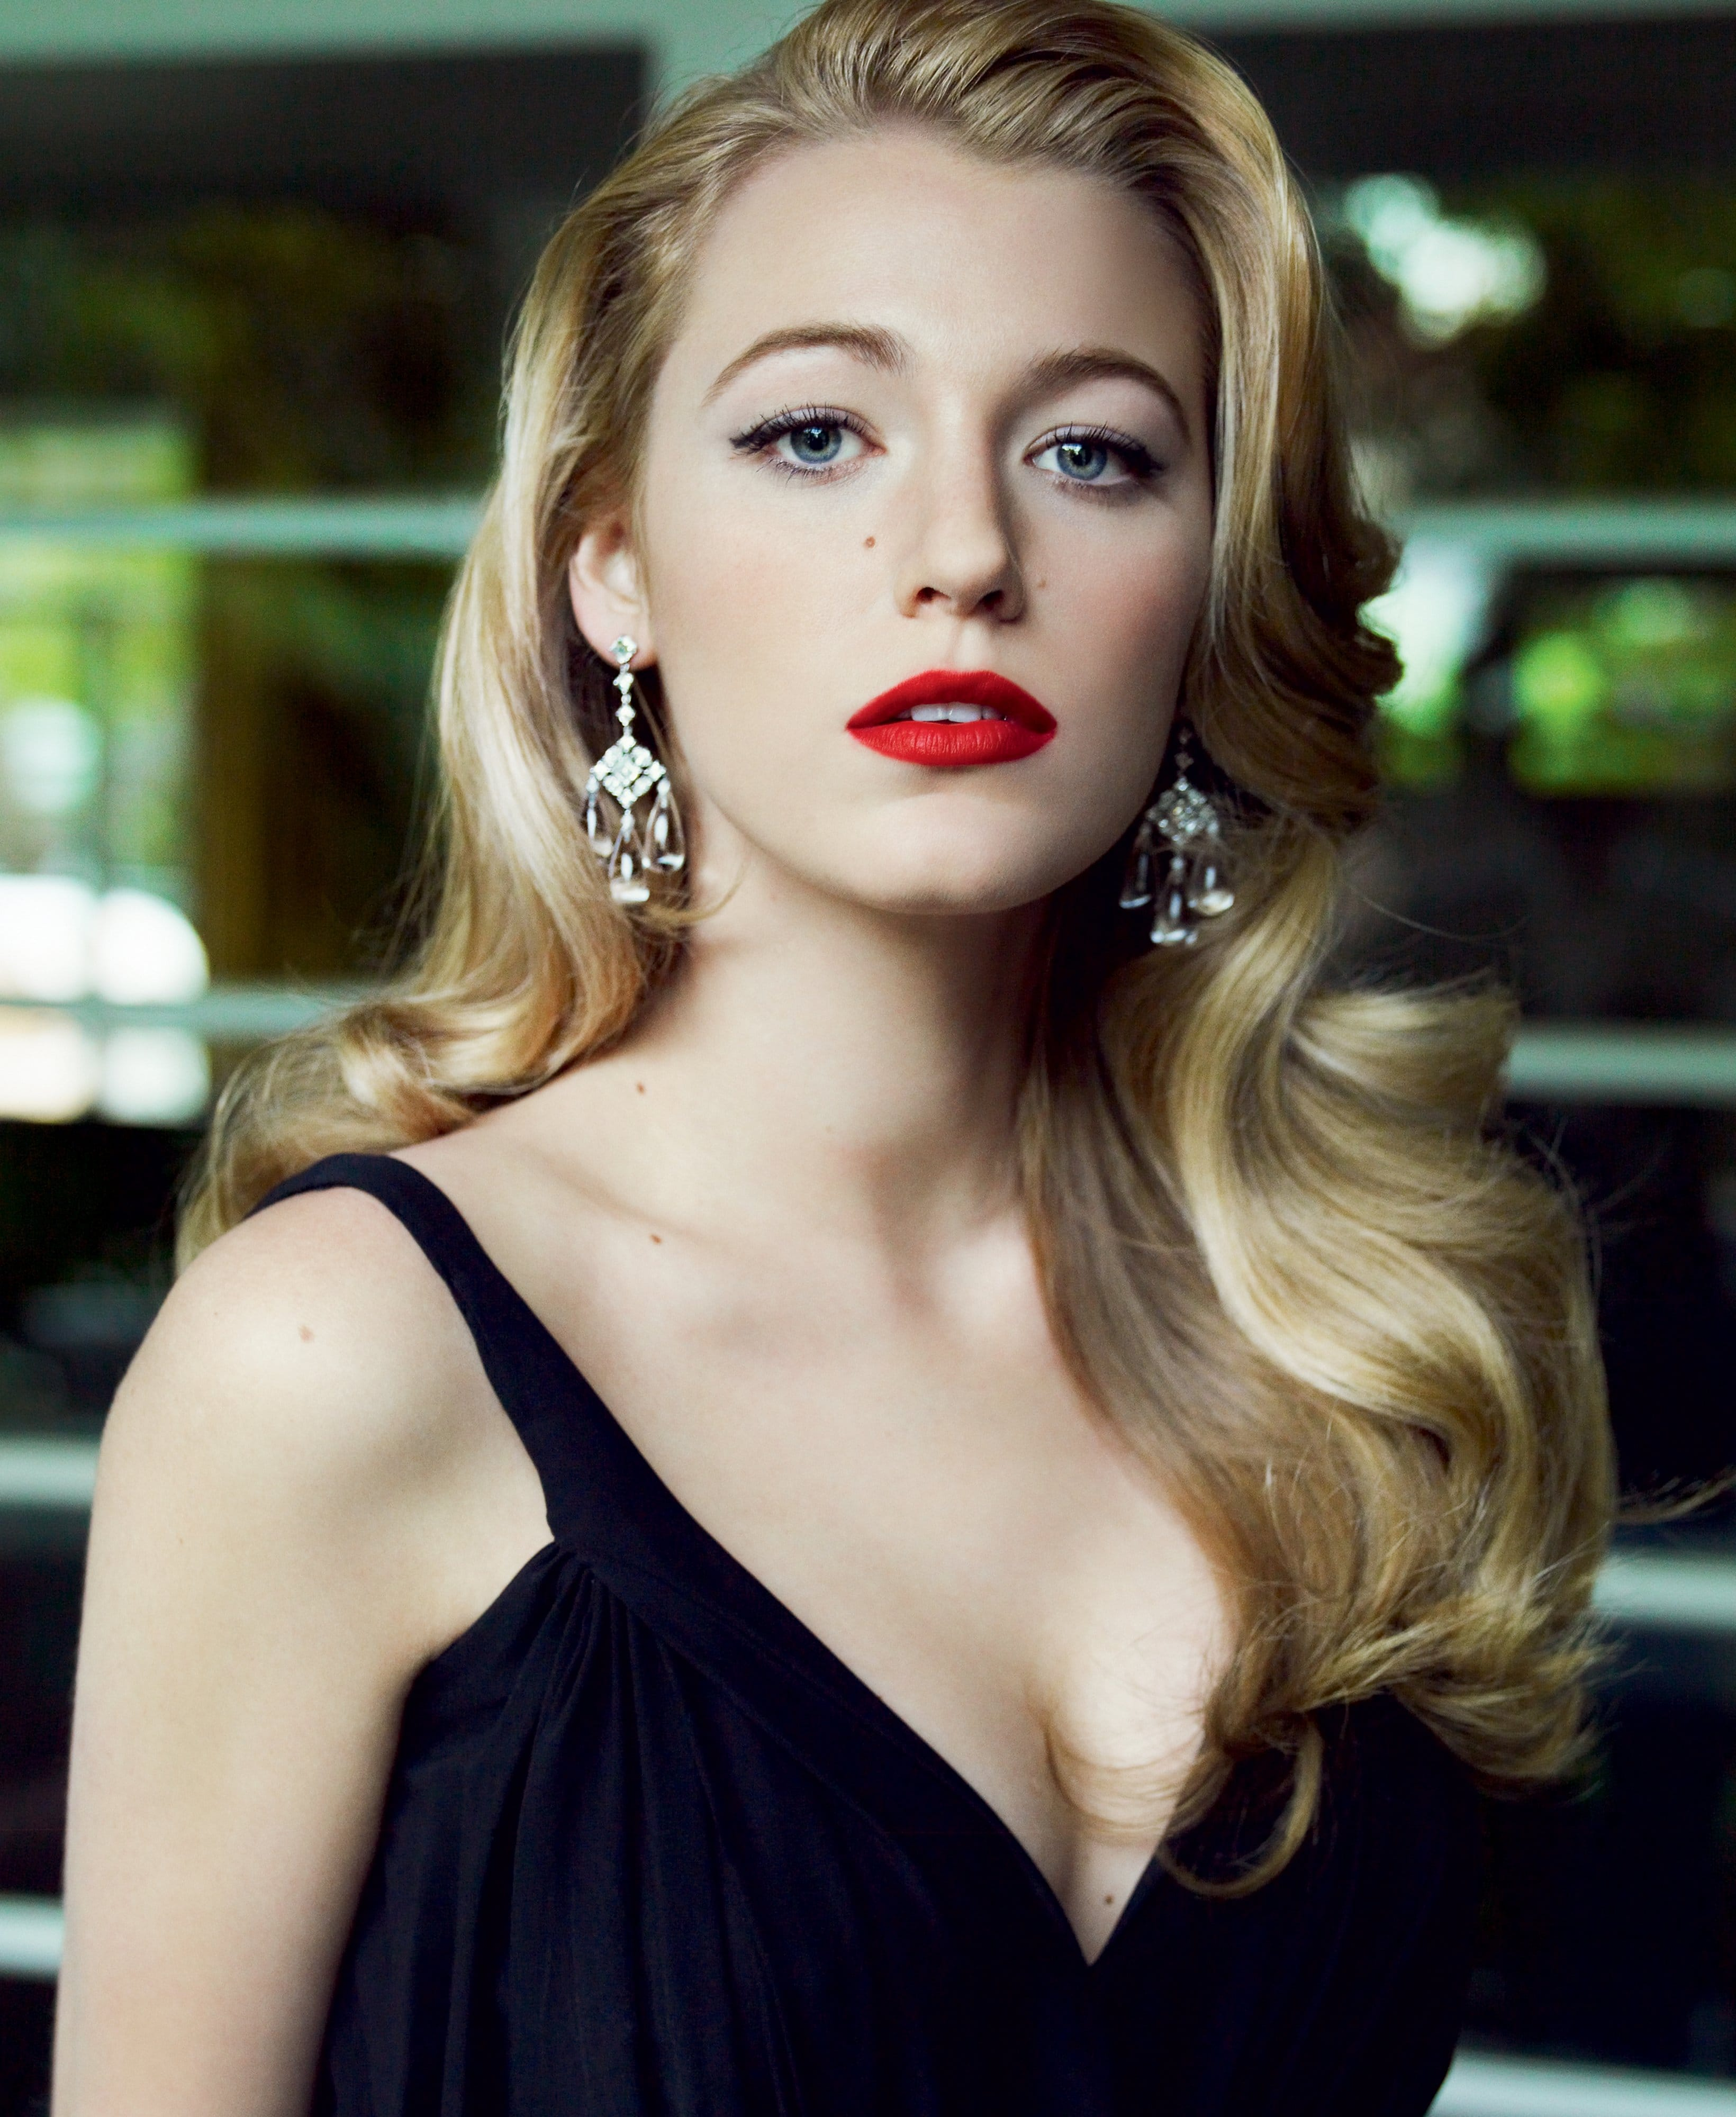 Blake Lively Hd Wallpapers 7wallpapers Net